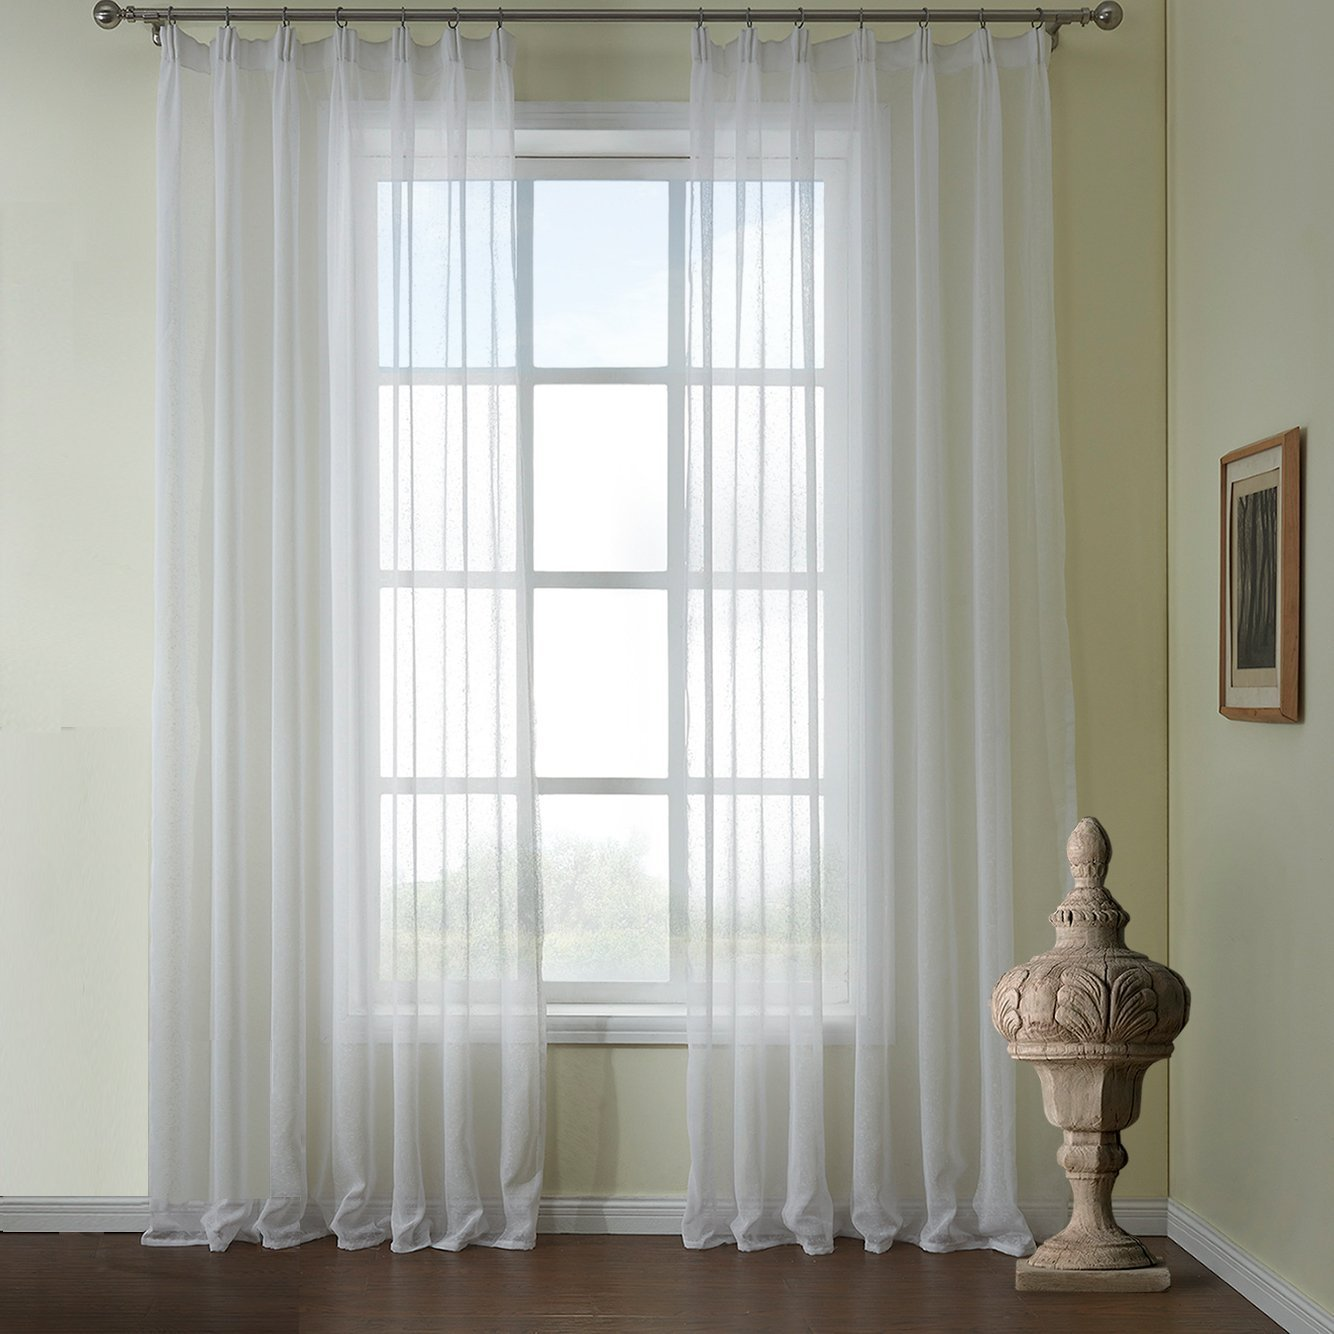 Anady Top White Sheer Curtains Imitation Linen Voile 2 Panels Decro Modern Simple Style - Anady Top Space Design